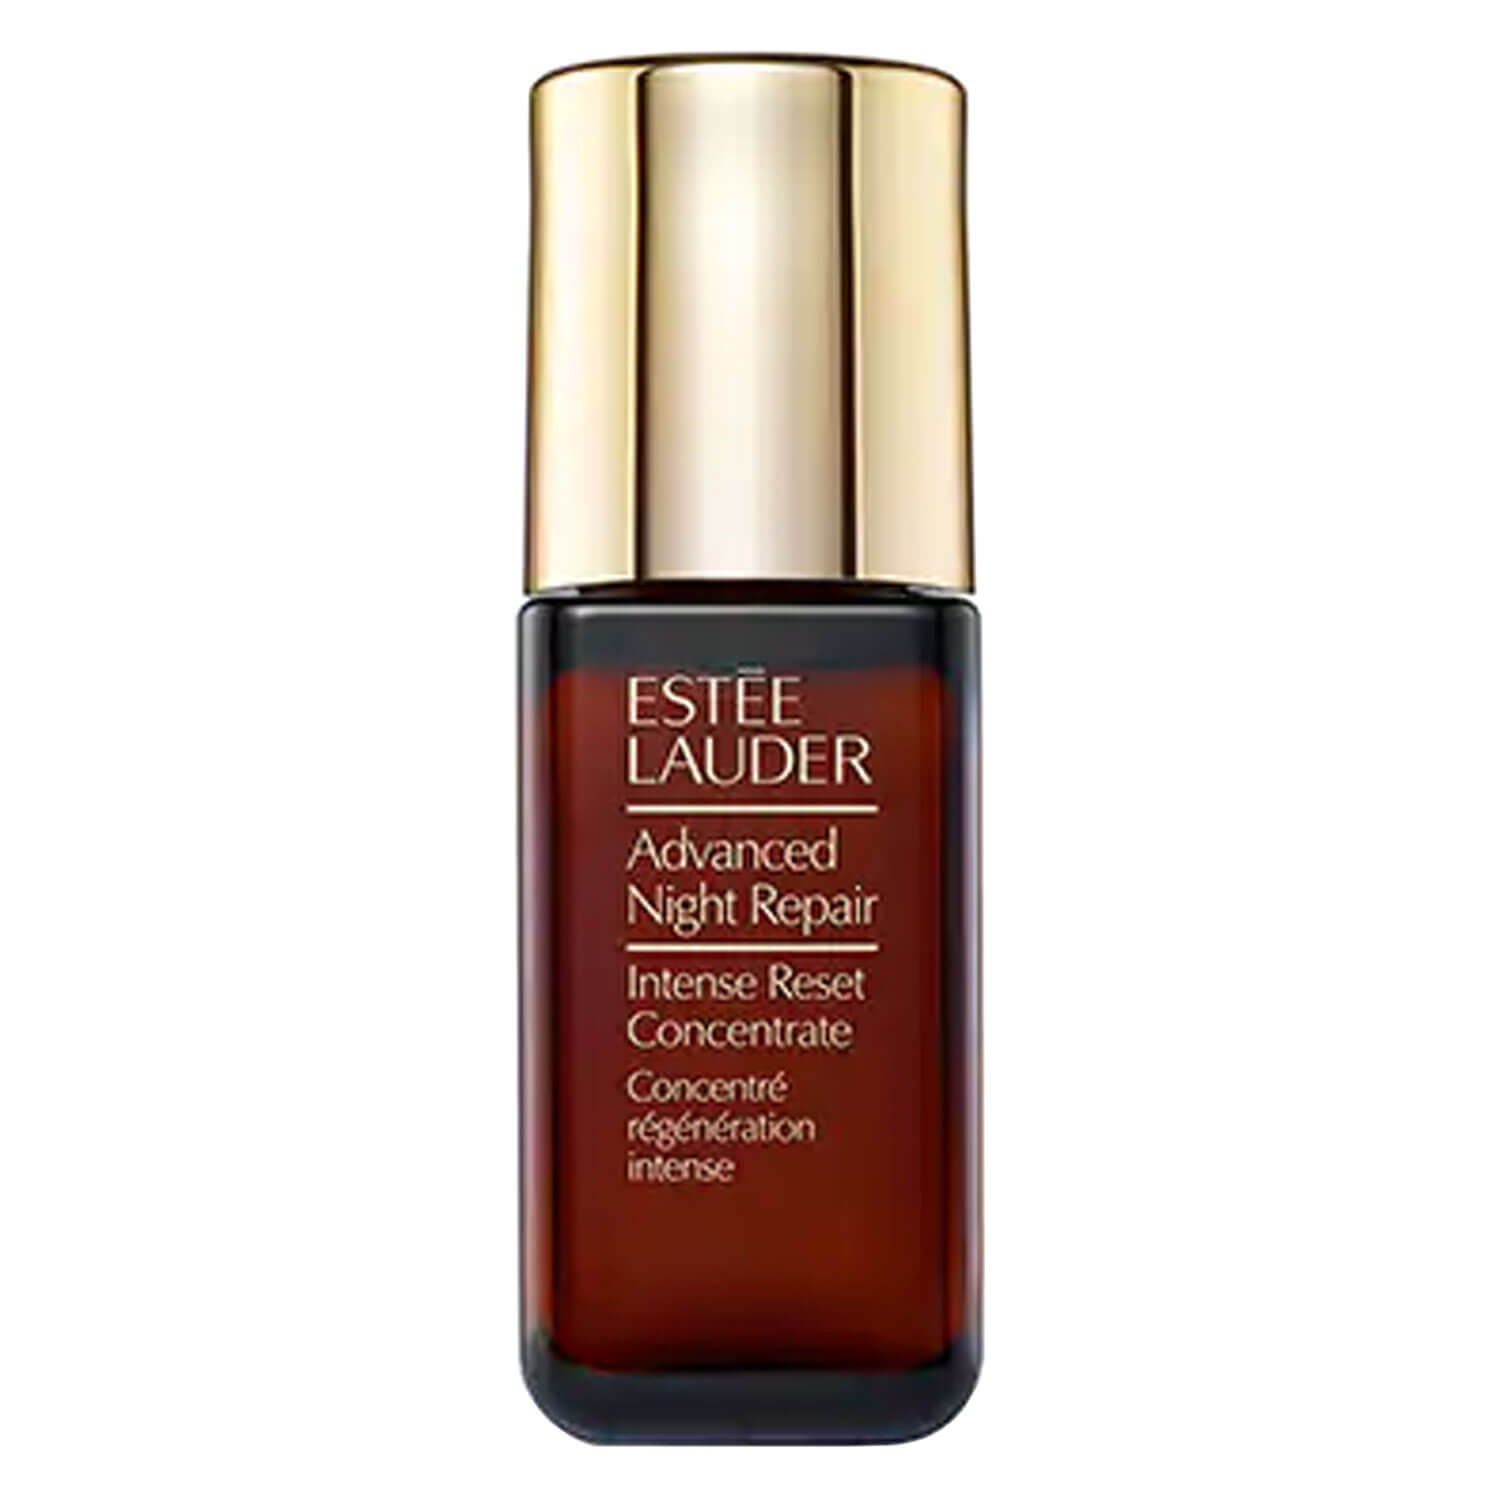 Advanced Night Repair Intense Reset Concentrate 4YOU